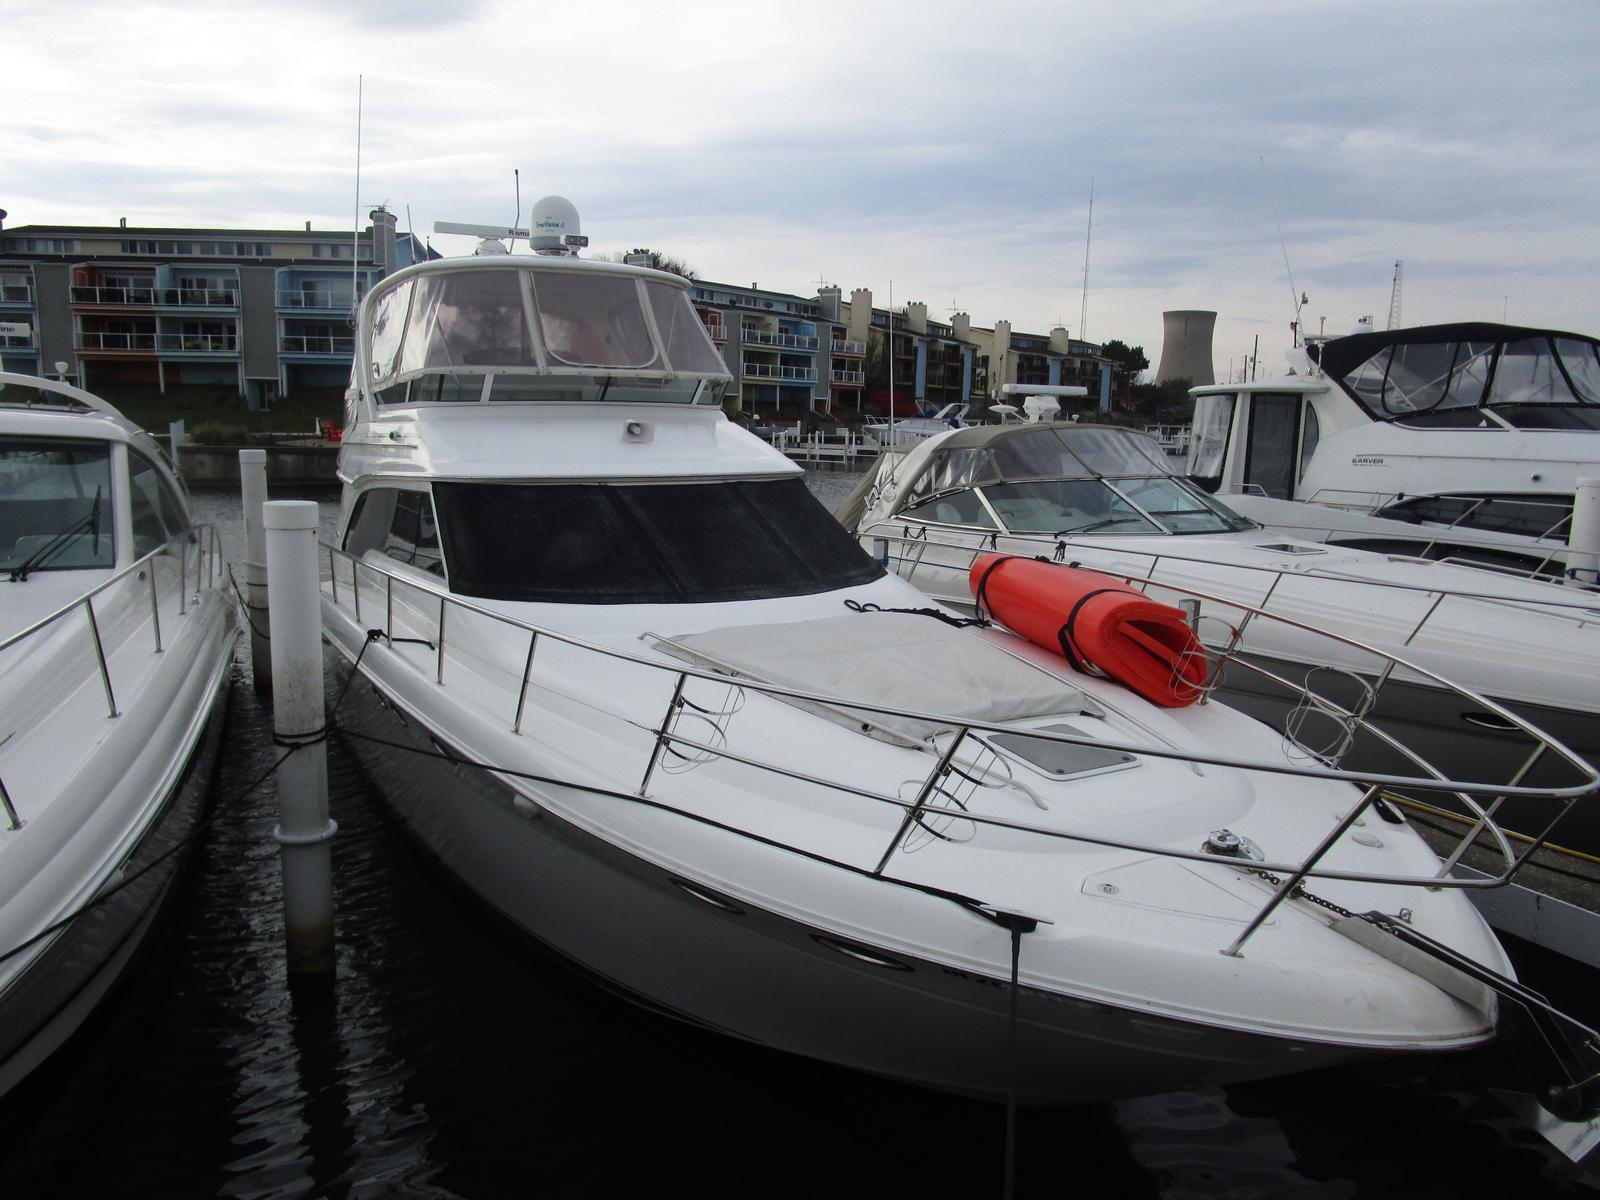 2003 Sea Ray boat for sale, model of the boat is 480 Sedan Bridge & Image # 1 of 15